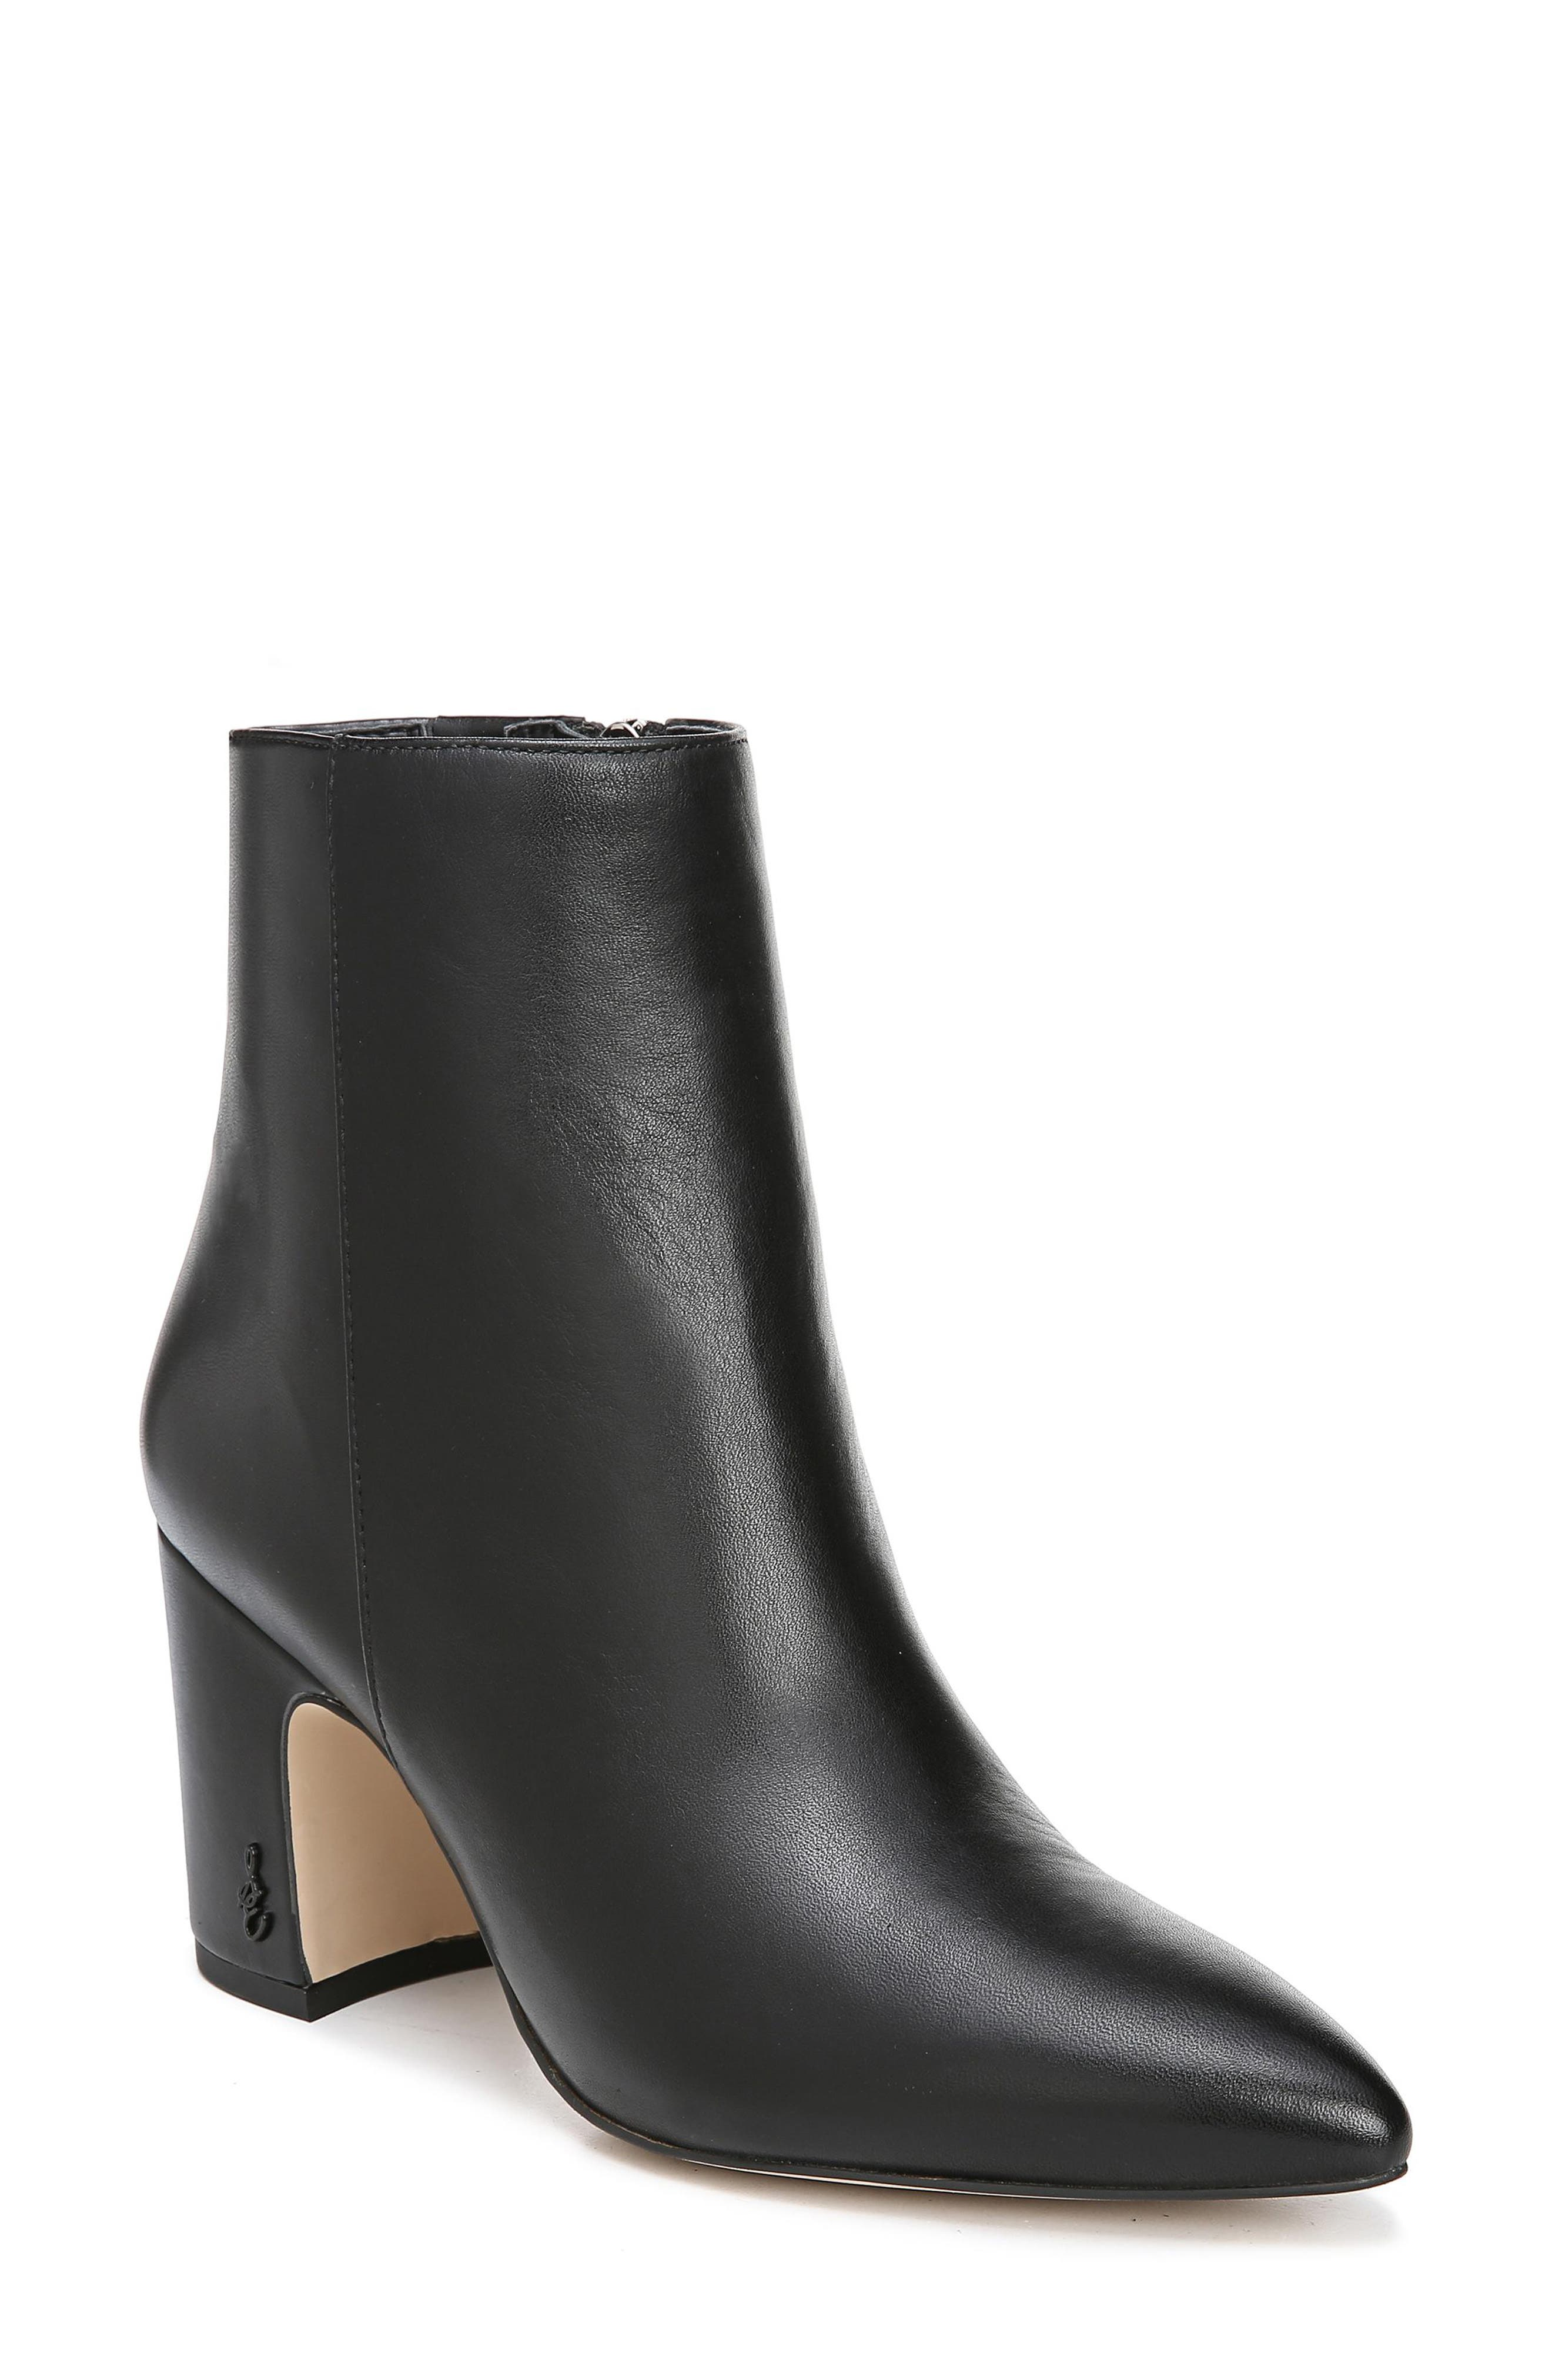 boots with pointy toes